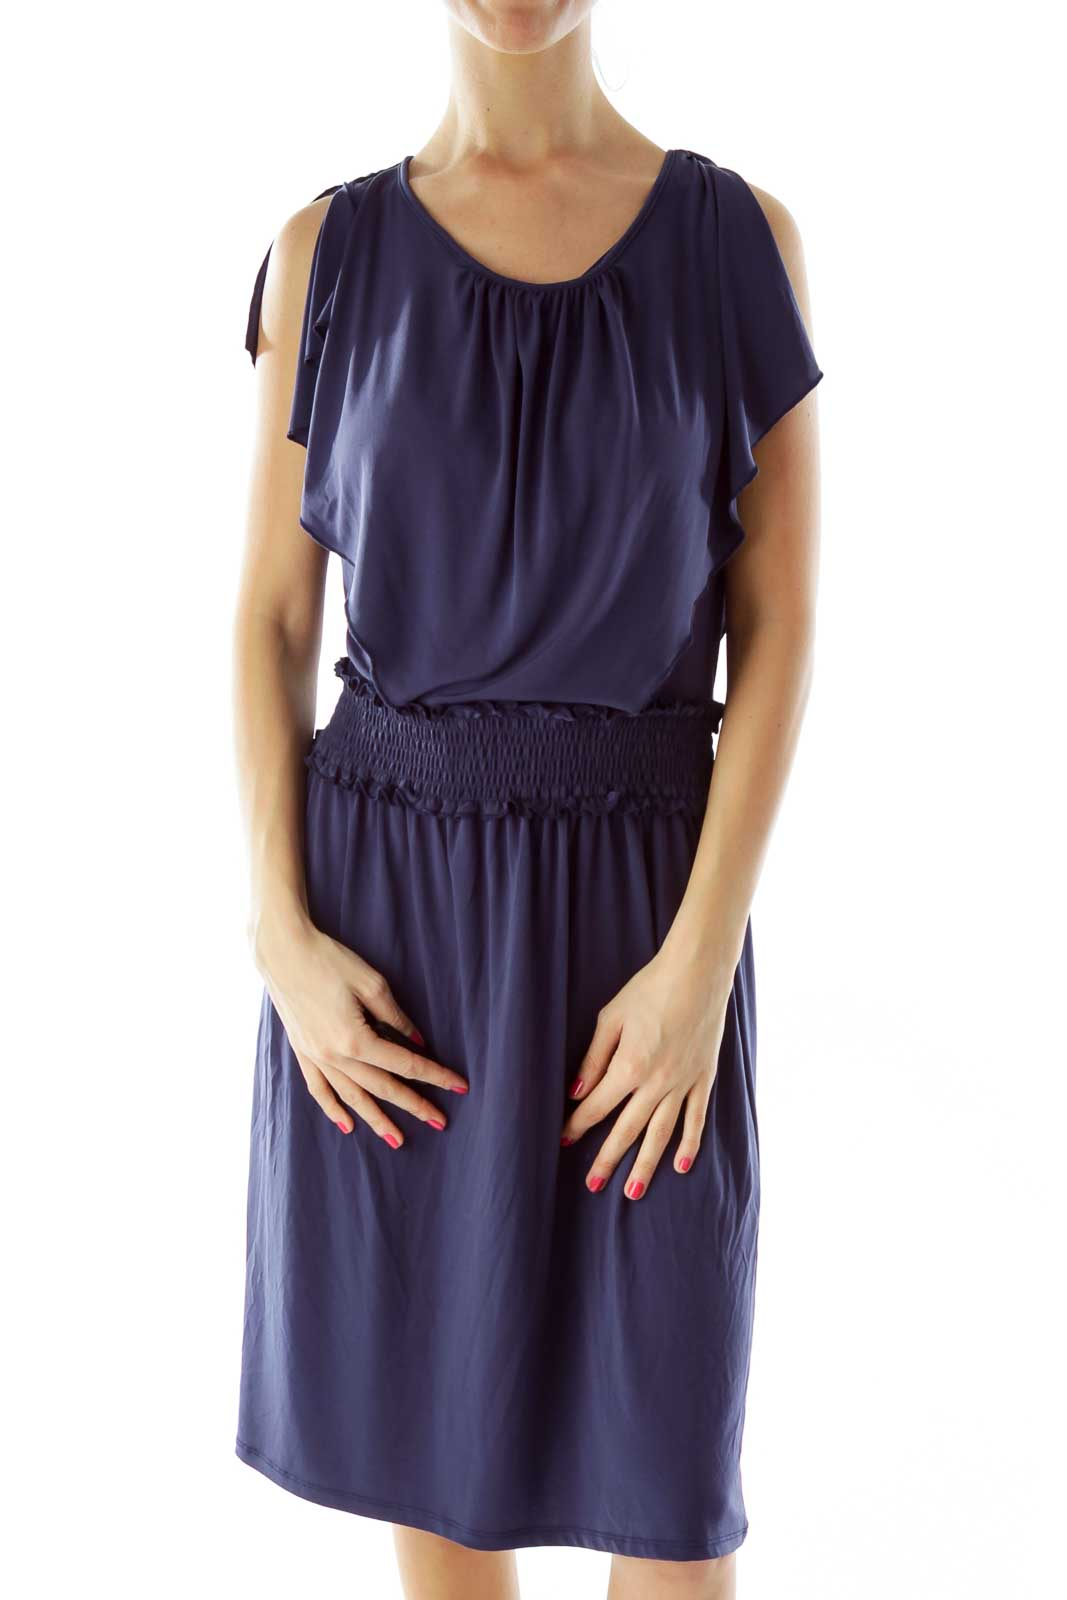 Navy Scrunched Ruffled Day Dress Front